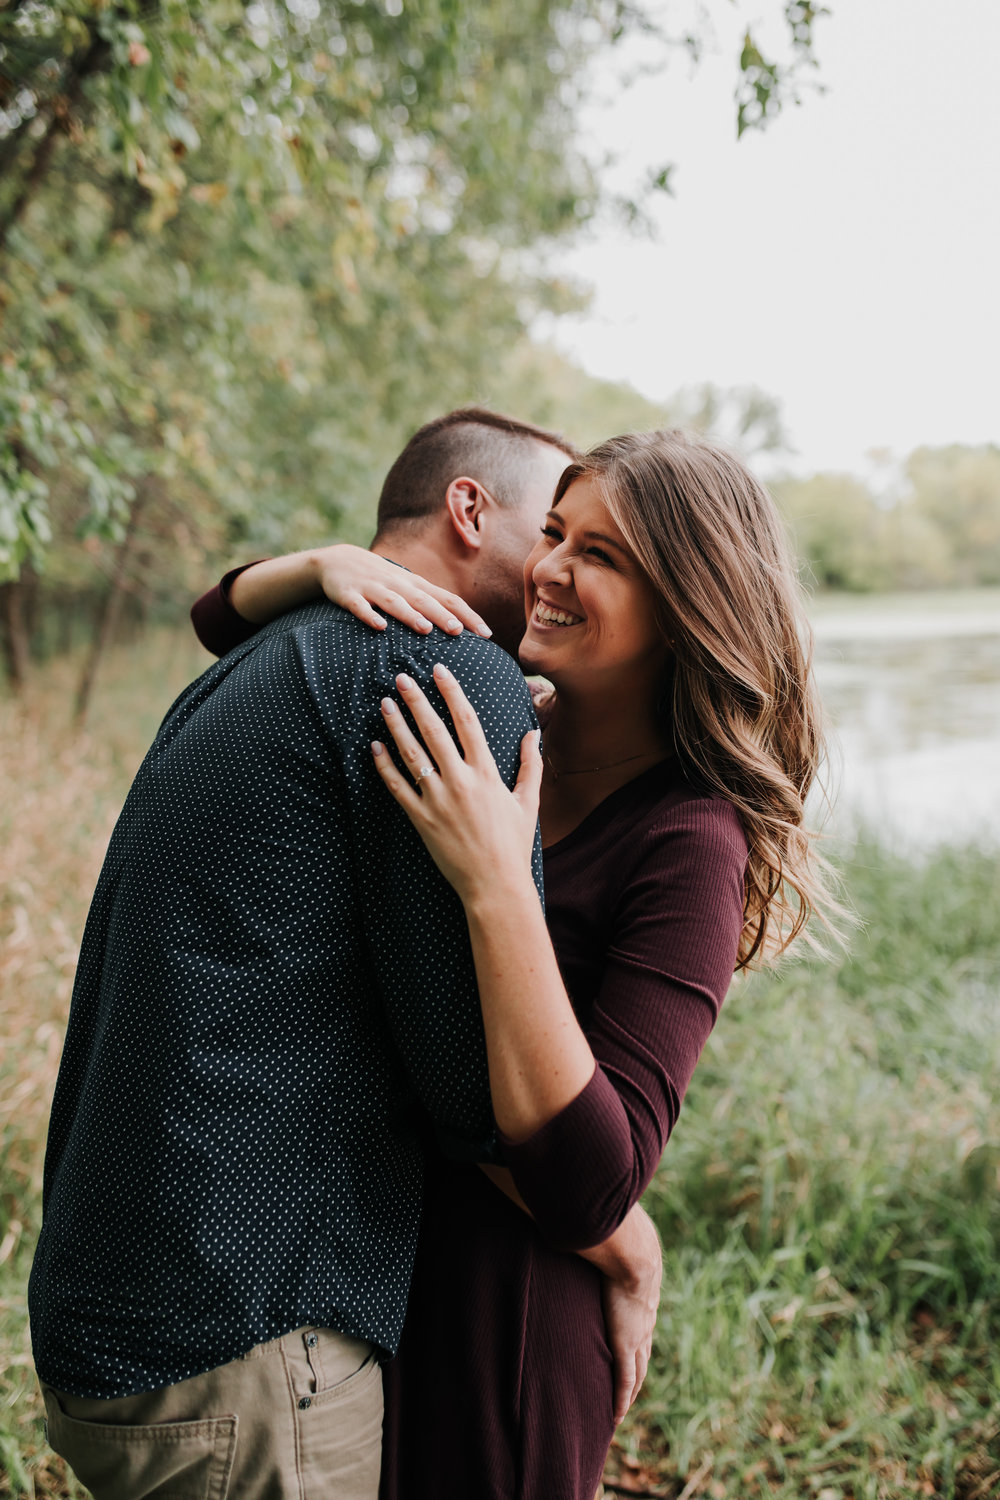 Paige & Nick - Engaged - Nathaniel Jensen Photography - Omaha Nebraska Wedding Photograper - Omaha Nebraska Engagement Session - Chalco Hills Engagement Session-54.jpg